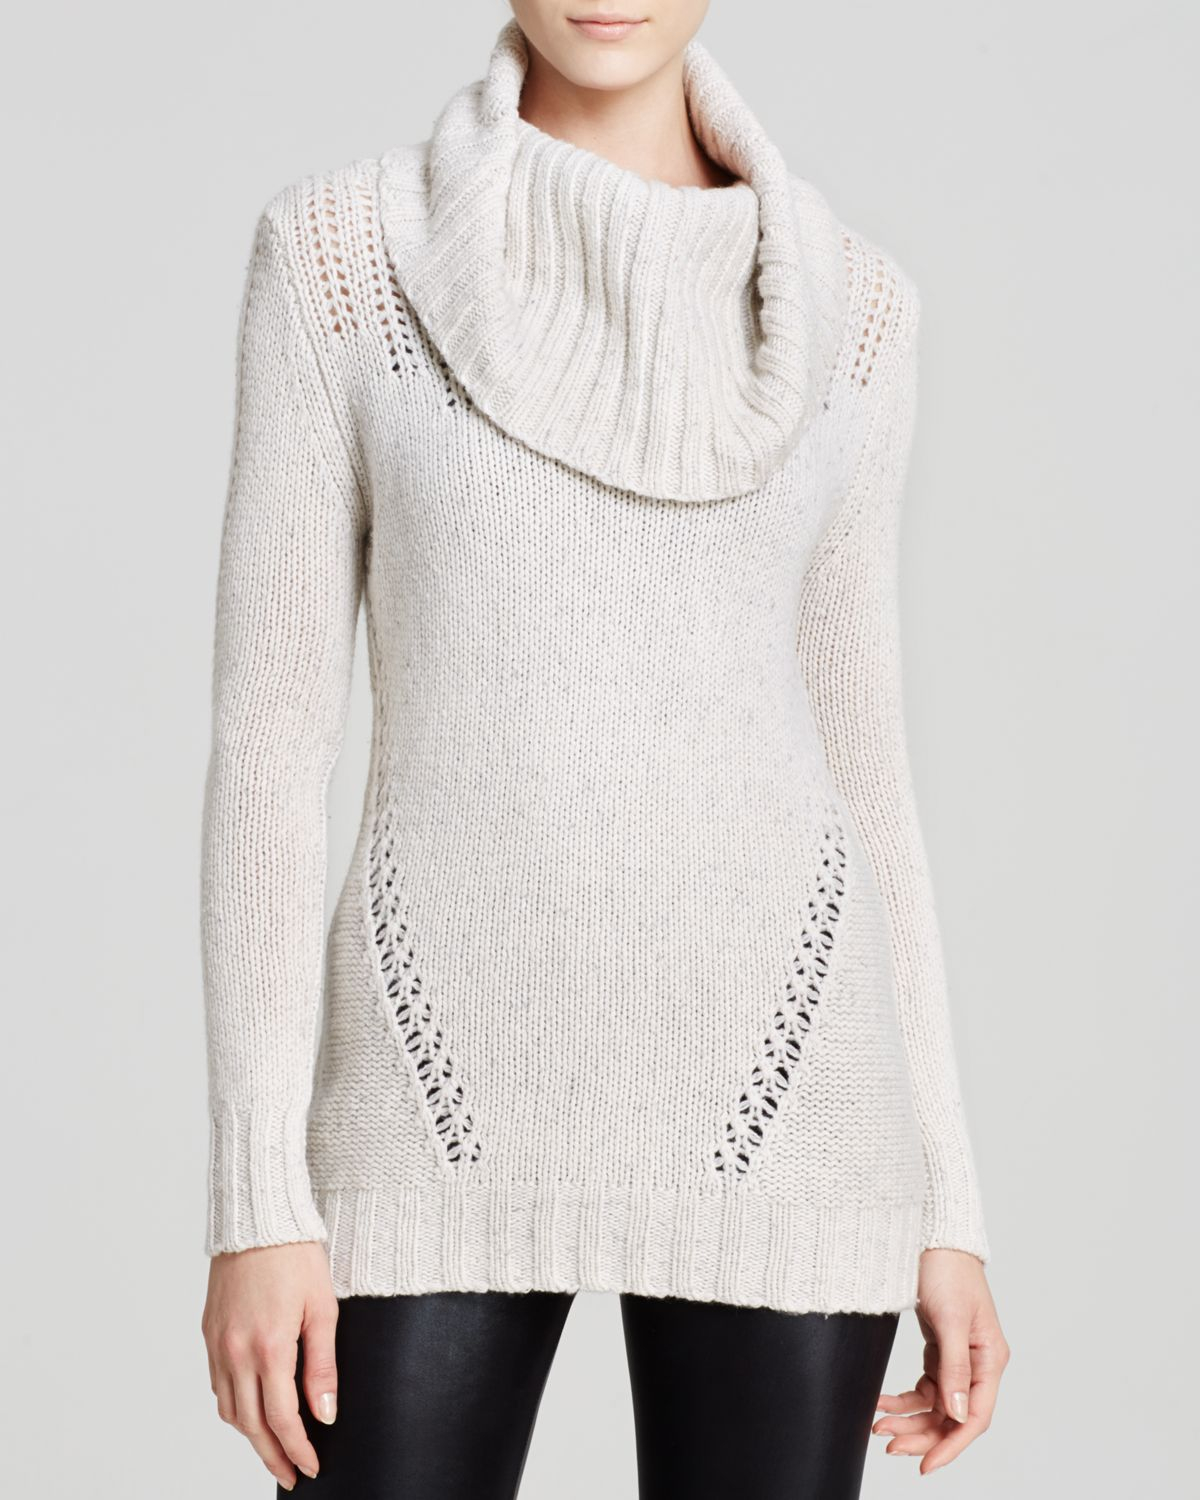 Autumn Cashmere Beige Sweater - Hand Knit Chunky Cowl Cashmere Lyst